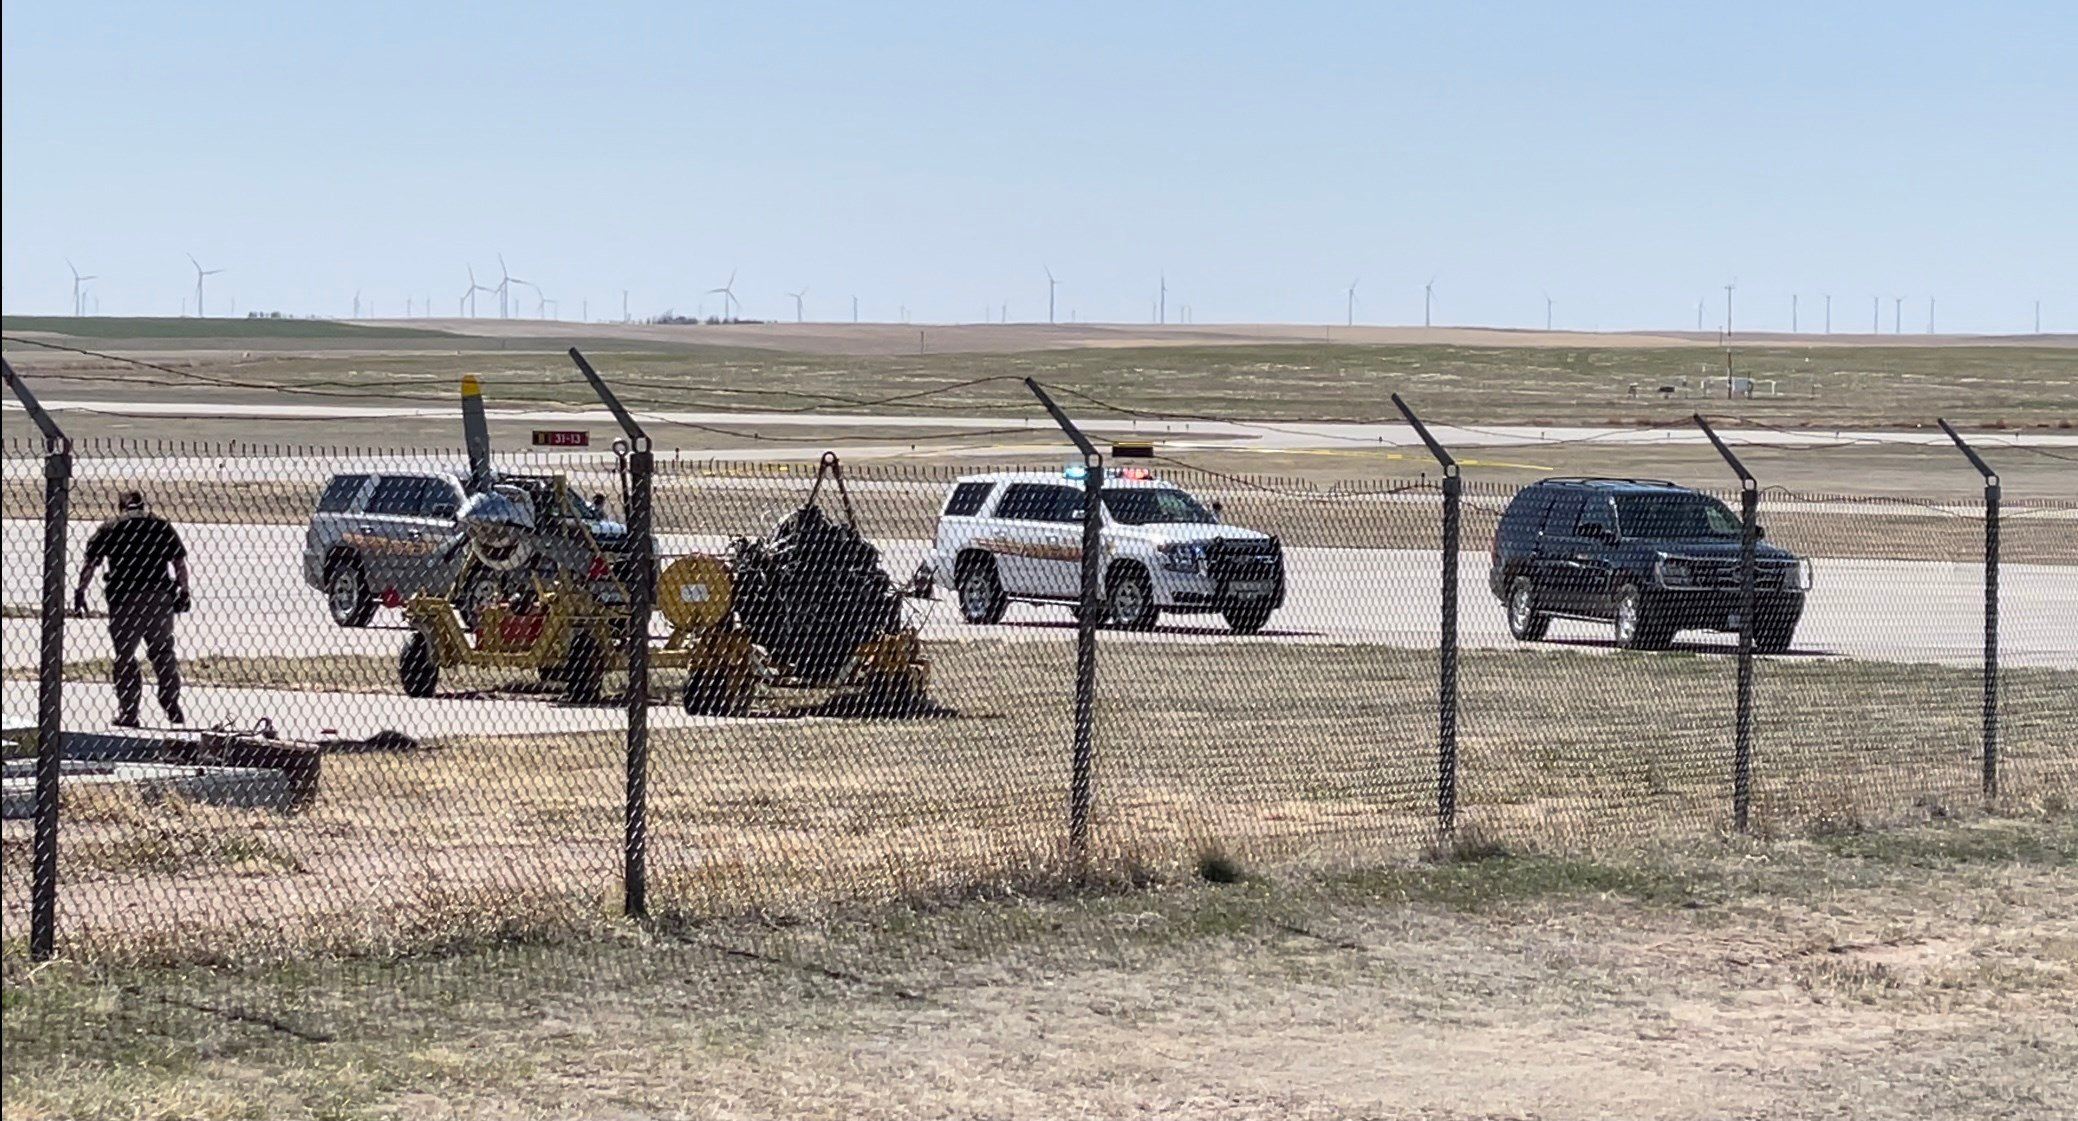 Attorney's office identifies two students involved in tragic accident at Sidney airport